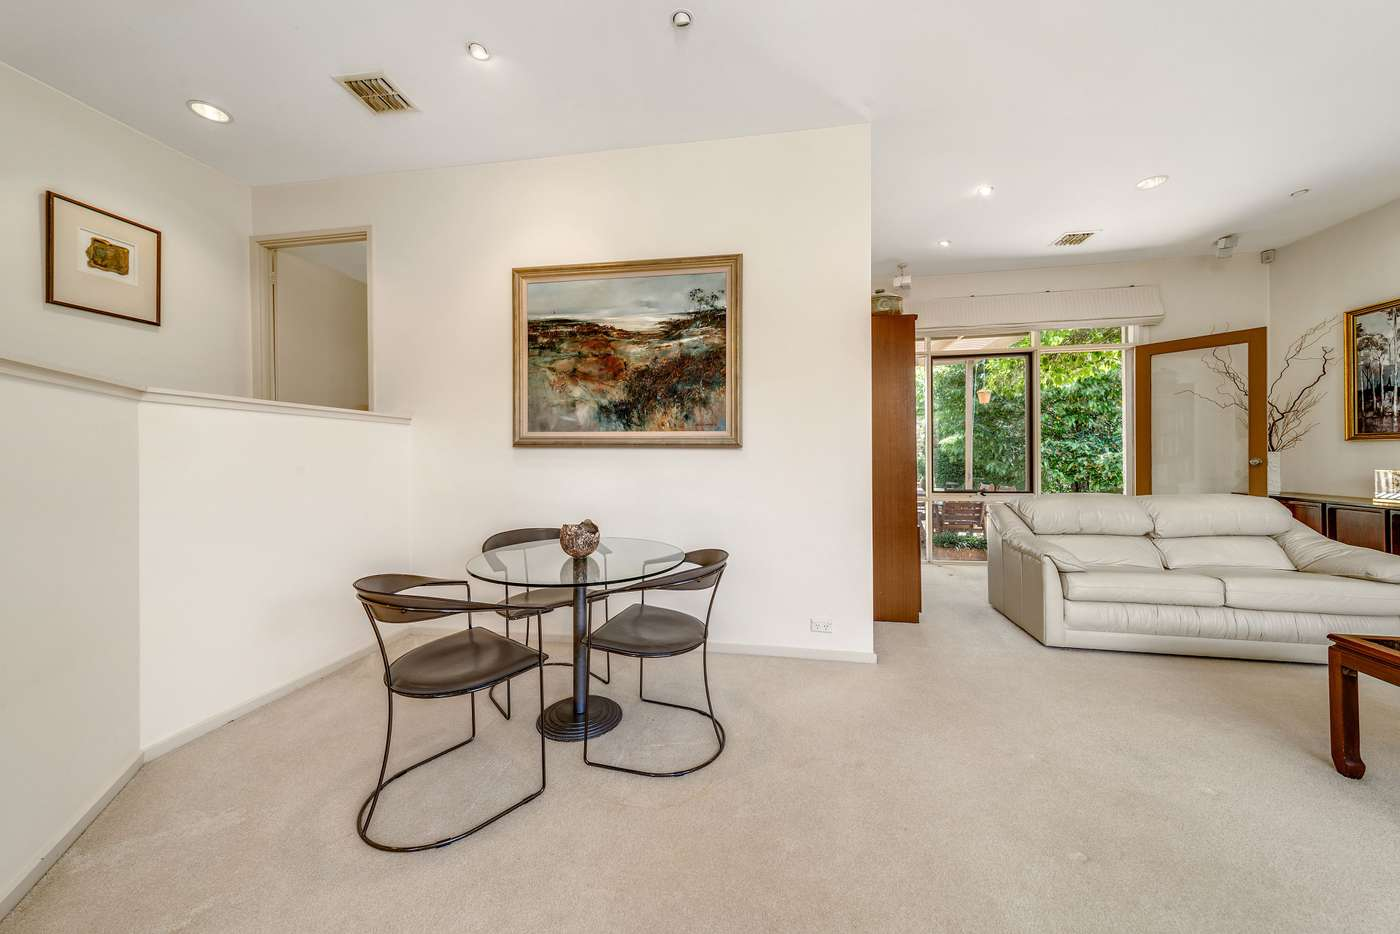 Fifth view of Homely house listing, 5/92 Crozier Circuit, Kambah ACT 2902